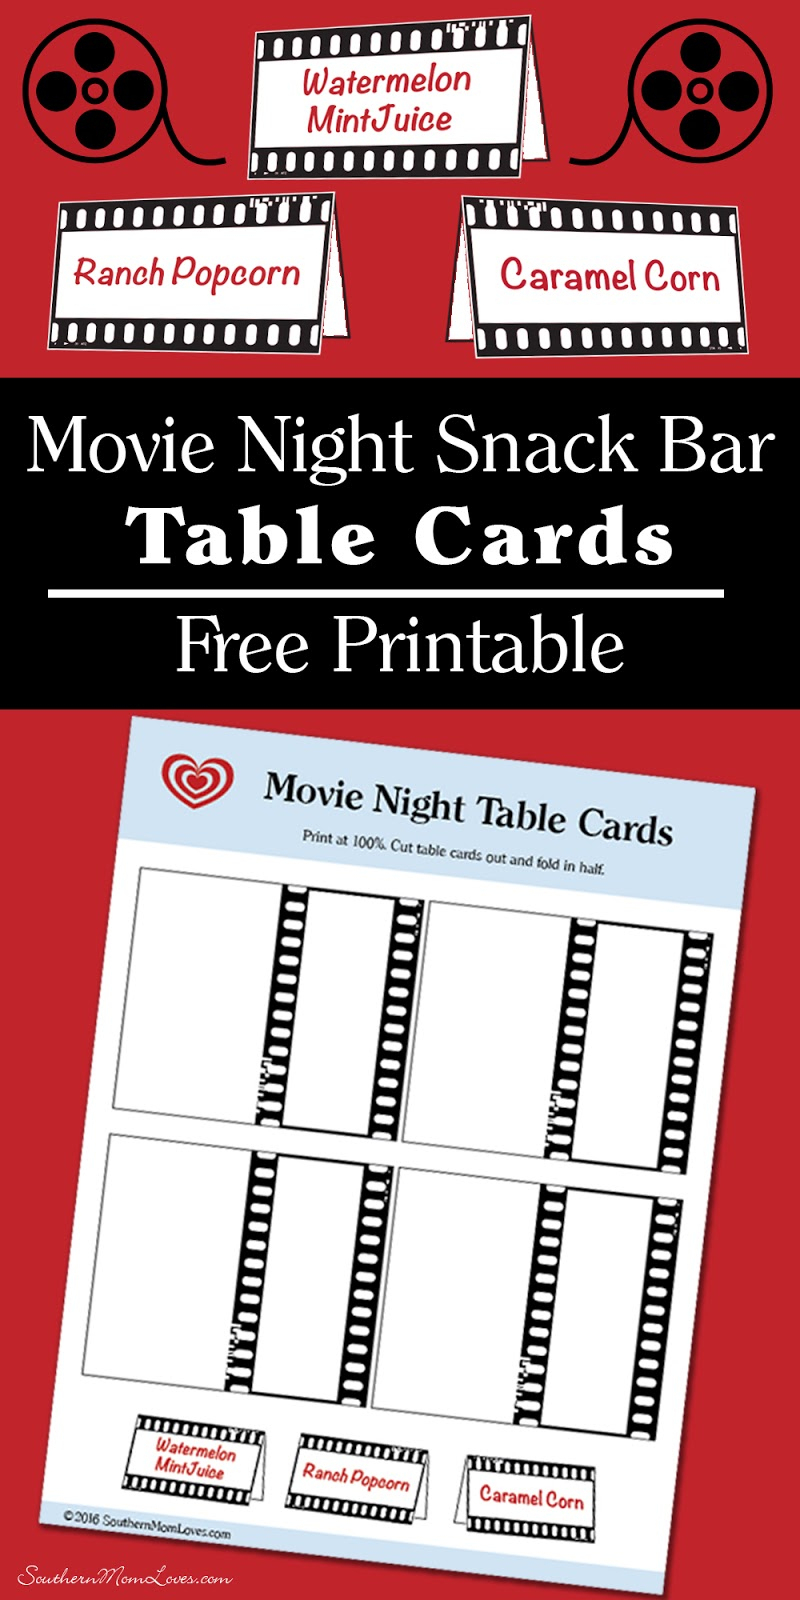 Southern Mom Loves: Movie Night Snack Bar Table Cards {Free Printable} - Free Concessions Printable